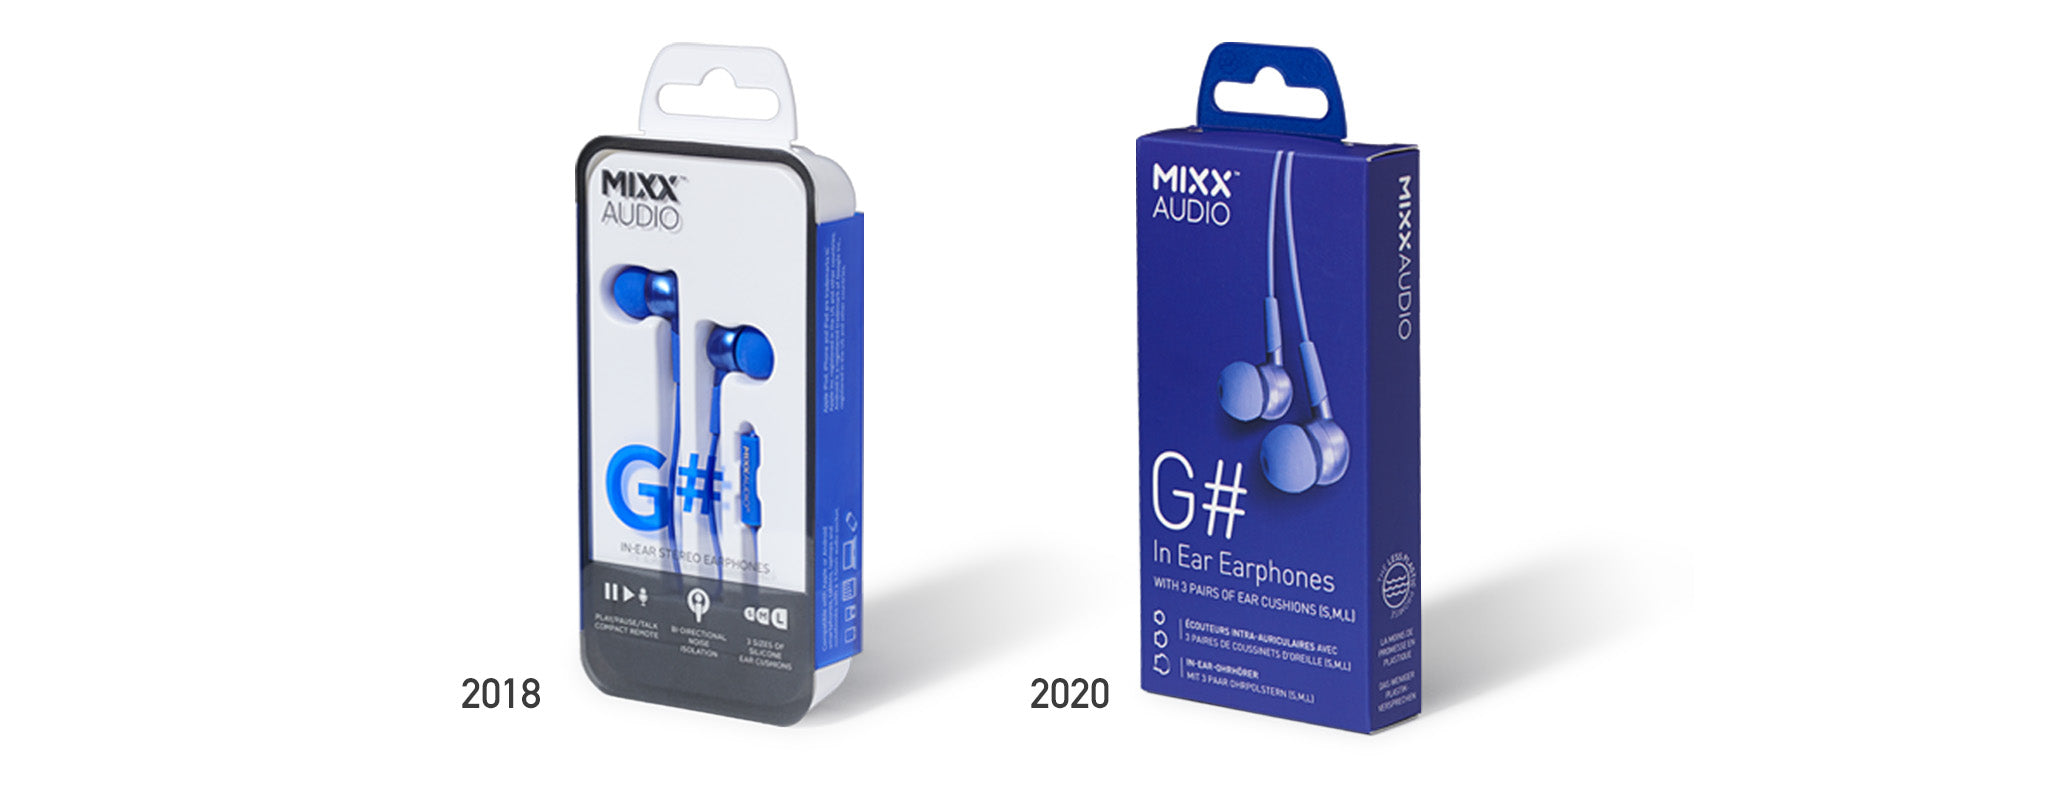 MIXX G# packaging with less plastic